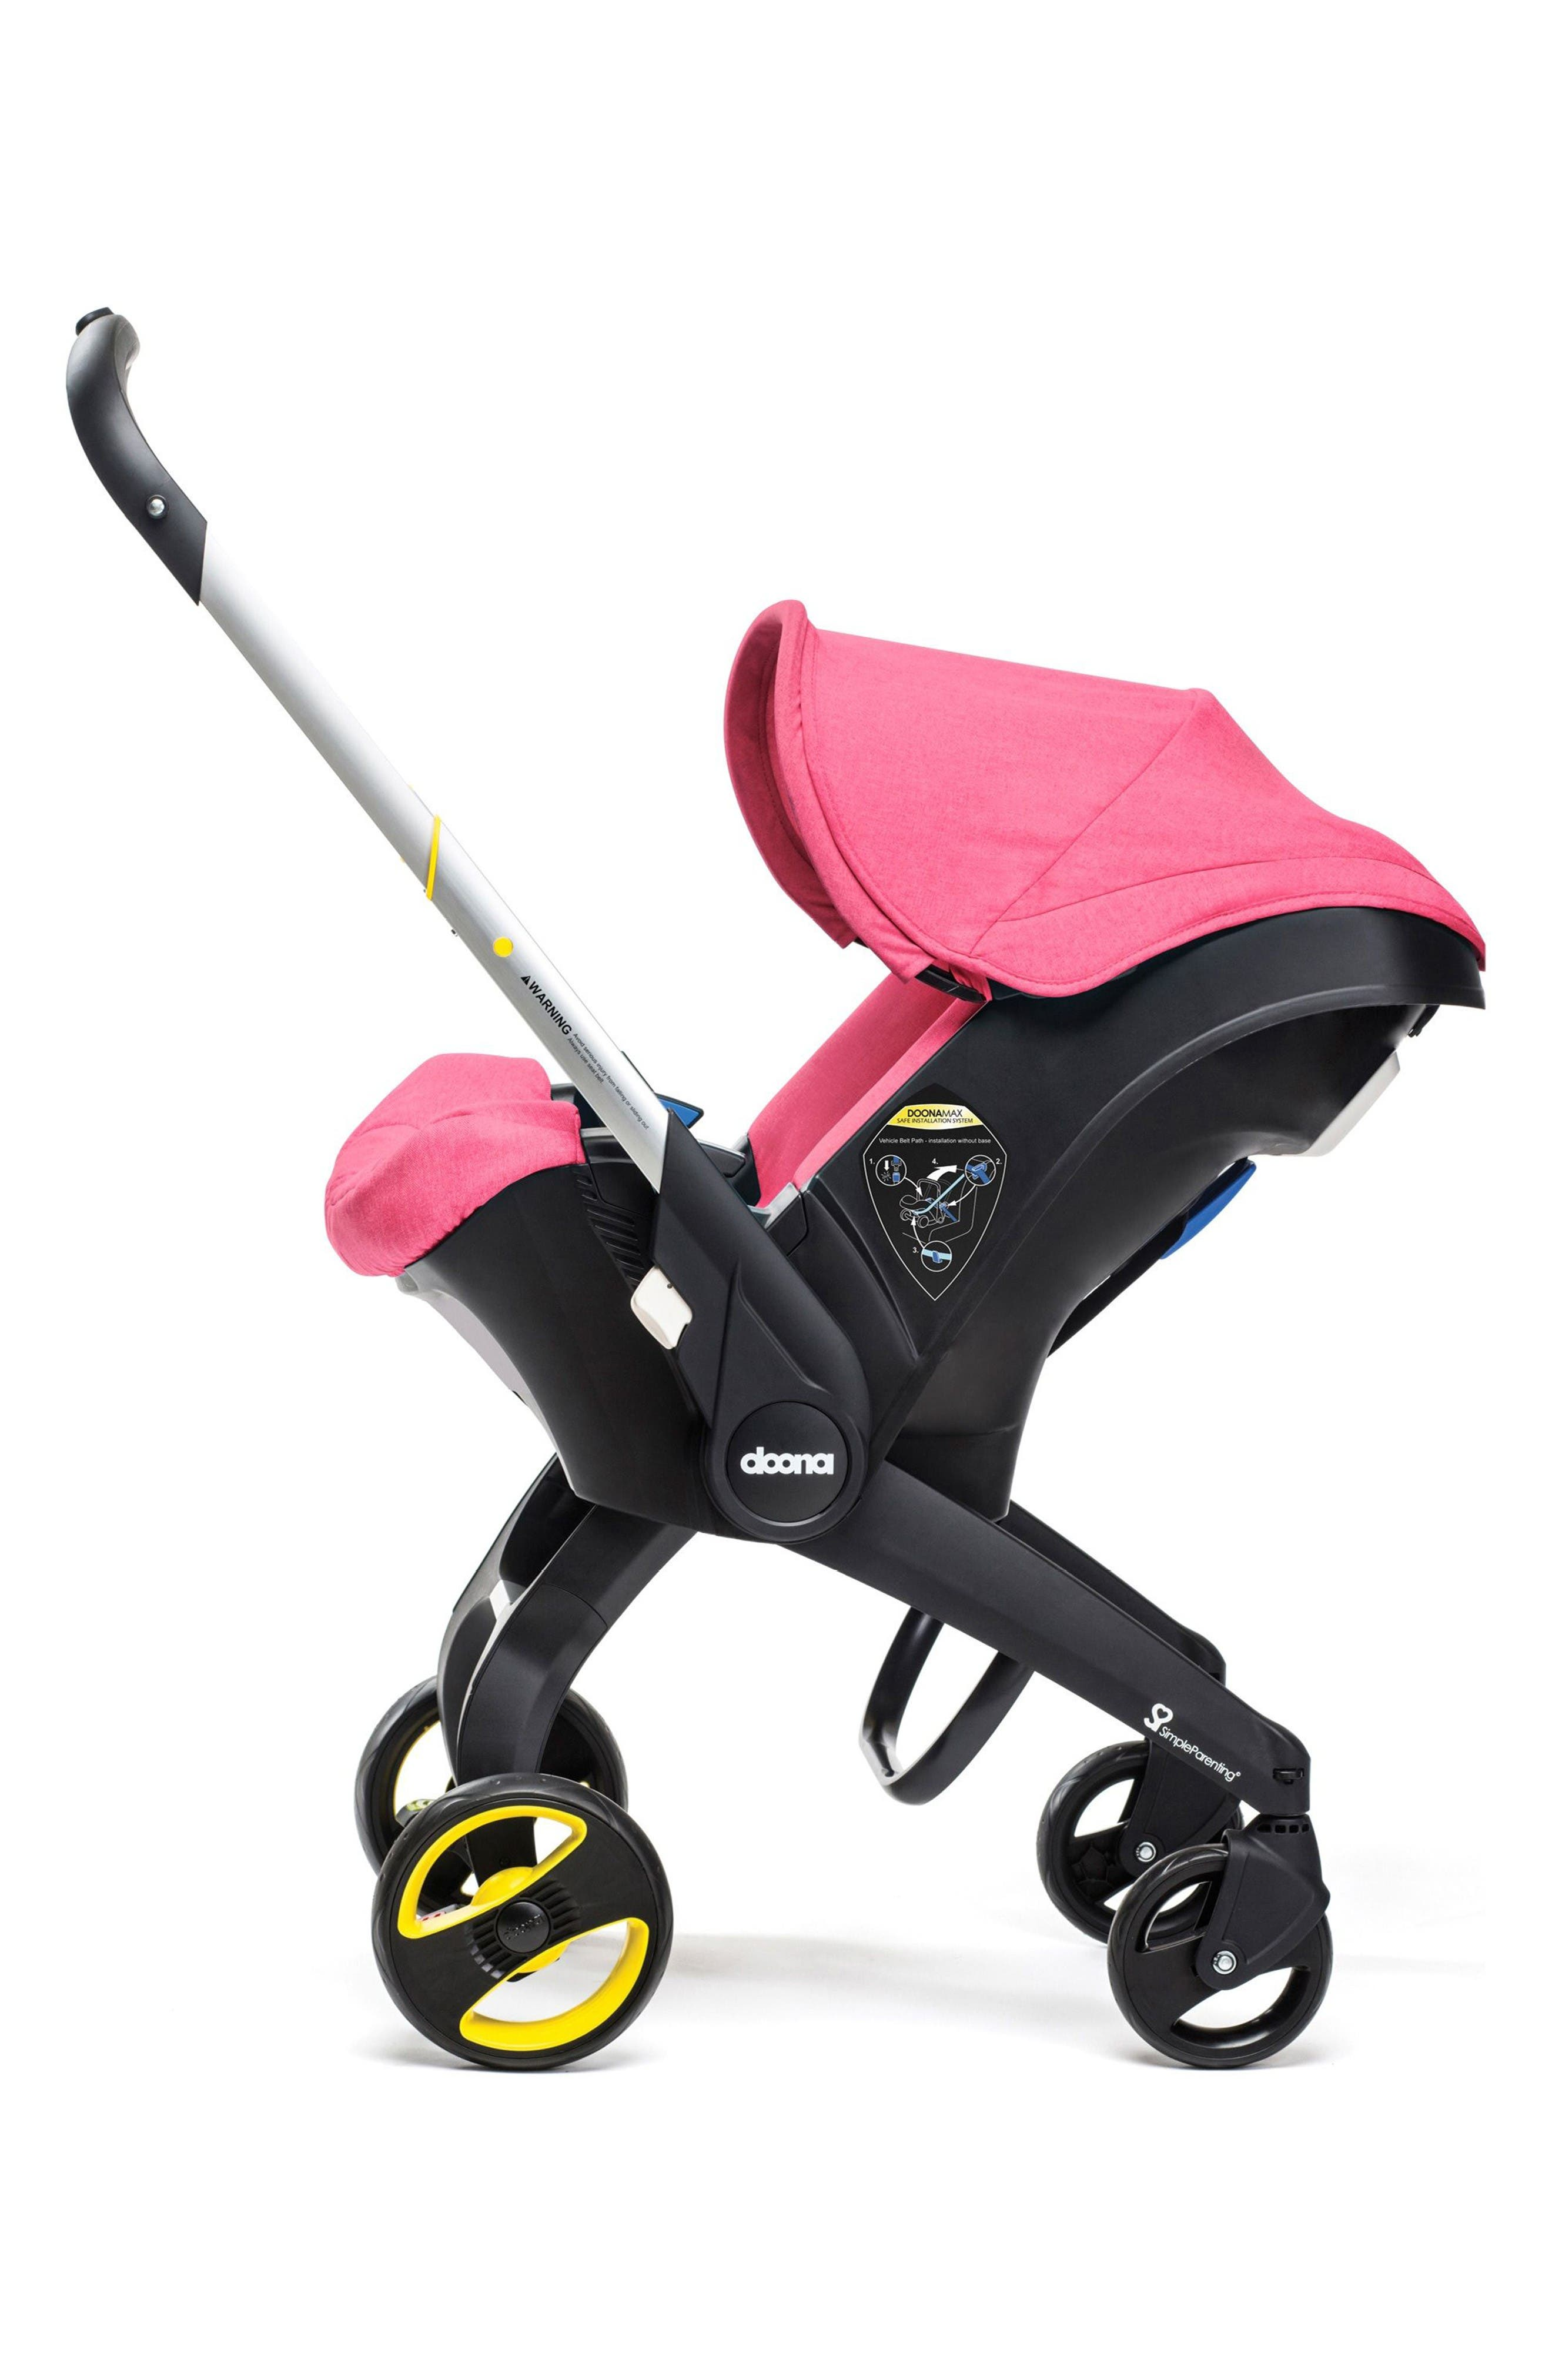 doona convertible infant car seatcompact stroller system